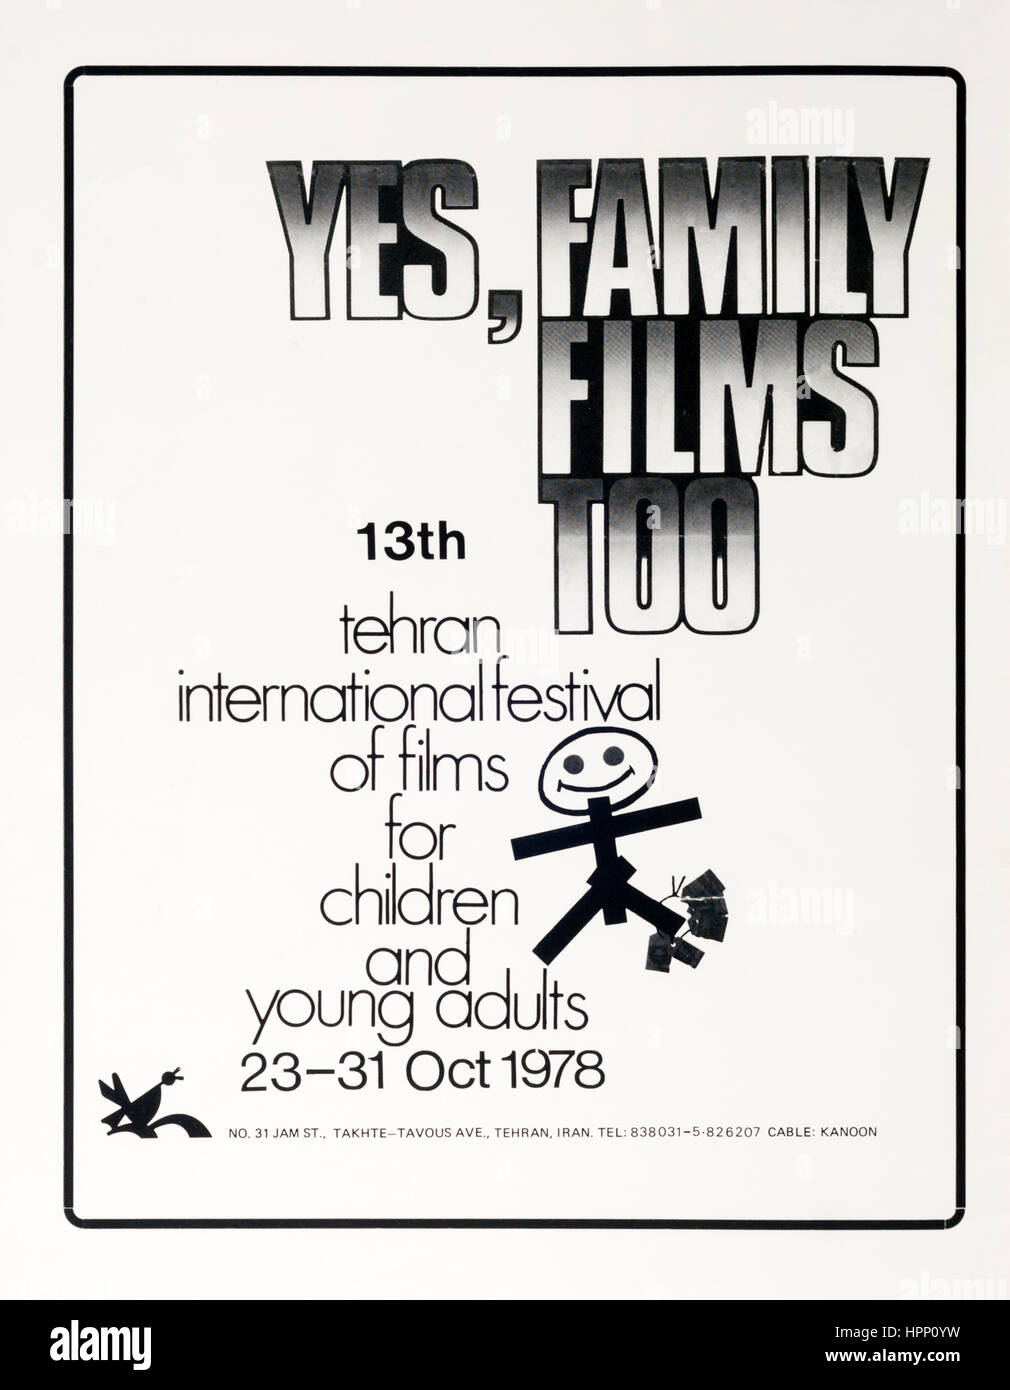 1978 magazine advertisement for the 13th Tehran International Festival of Films for Children and Young Adults. - Stock Image